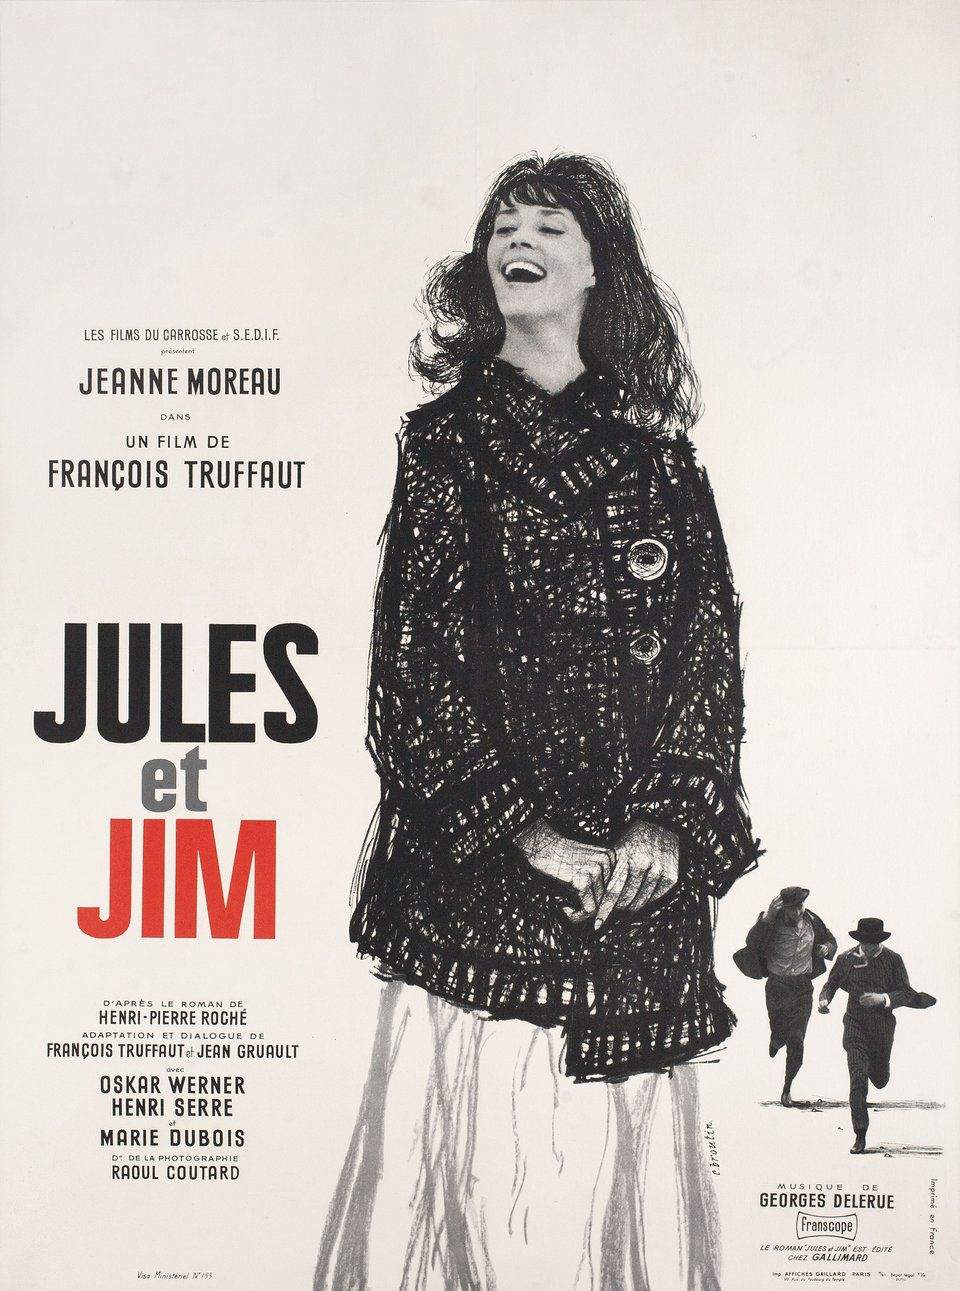 Jules And Jim 1962 French Moyenne Poster Posteritati Movie Poster Gallery New York French Movie Posters French Movies Jules And Jim